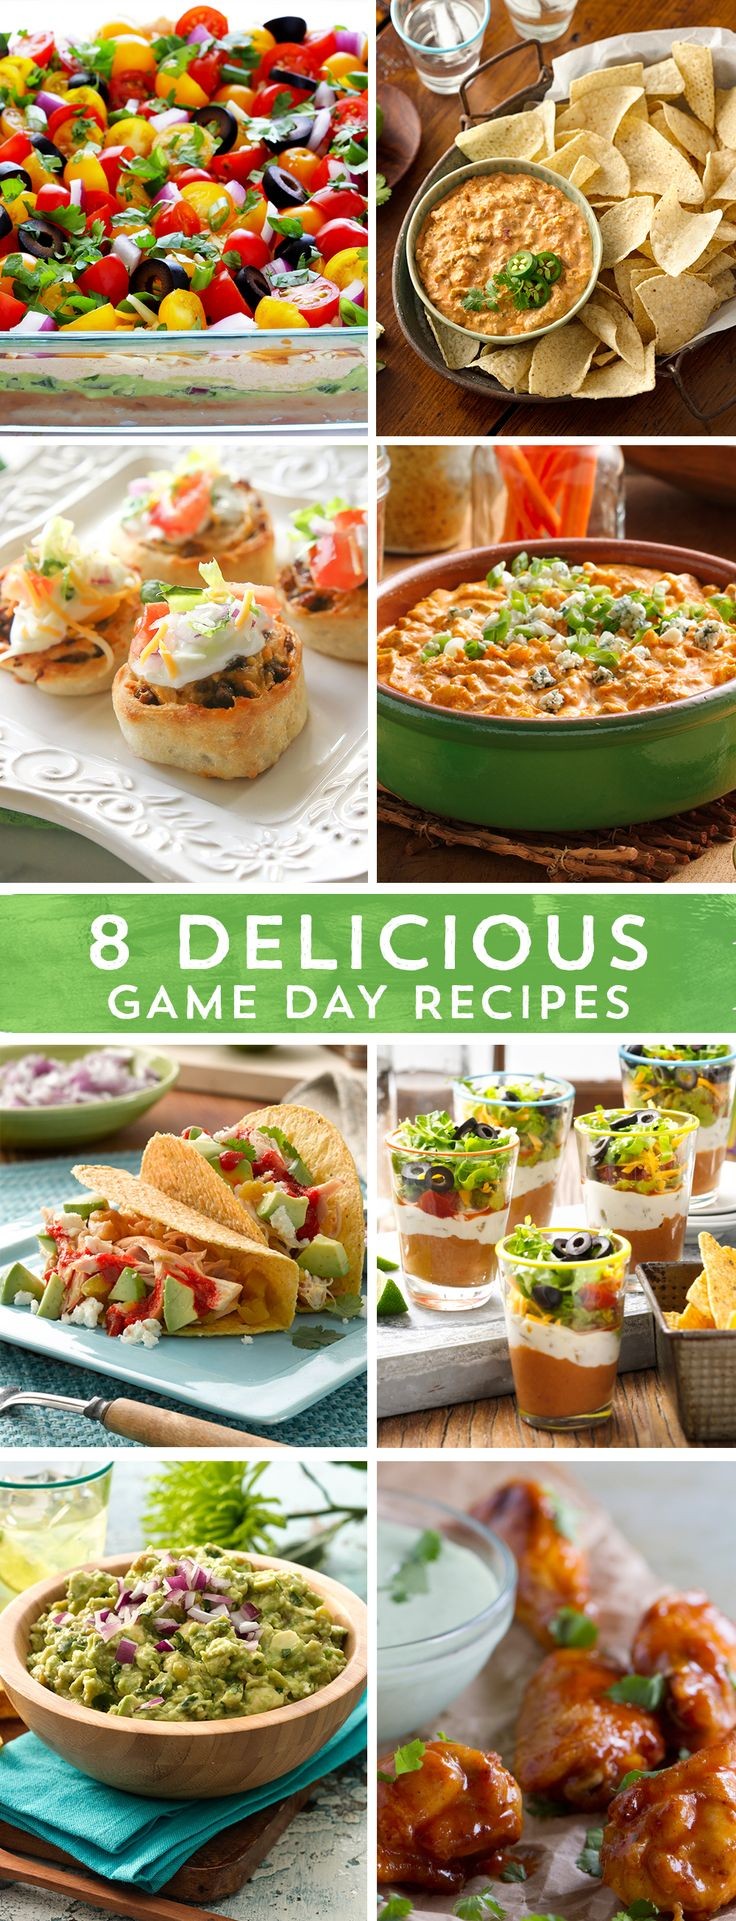 It's party time! Game Day calls for delicious snacks, and these are sure to score big with your hungry crowd! From the first down, to the very last touchdown, these party appetizers won't let you down - no matter who wins the big game!